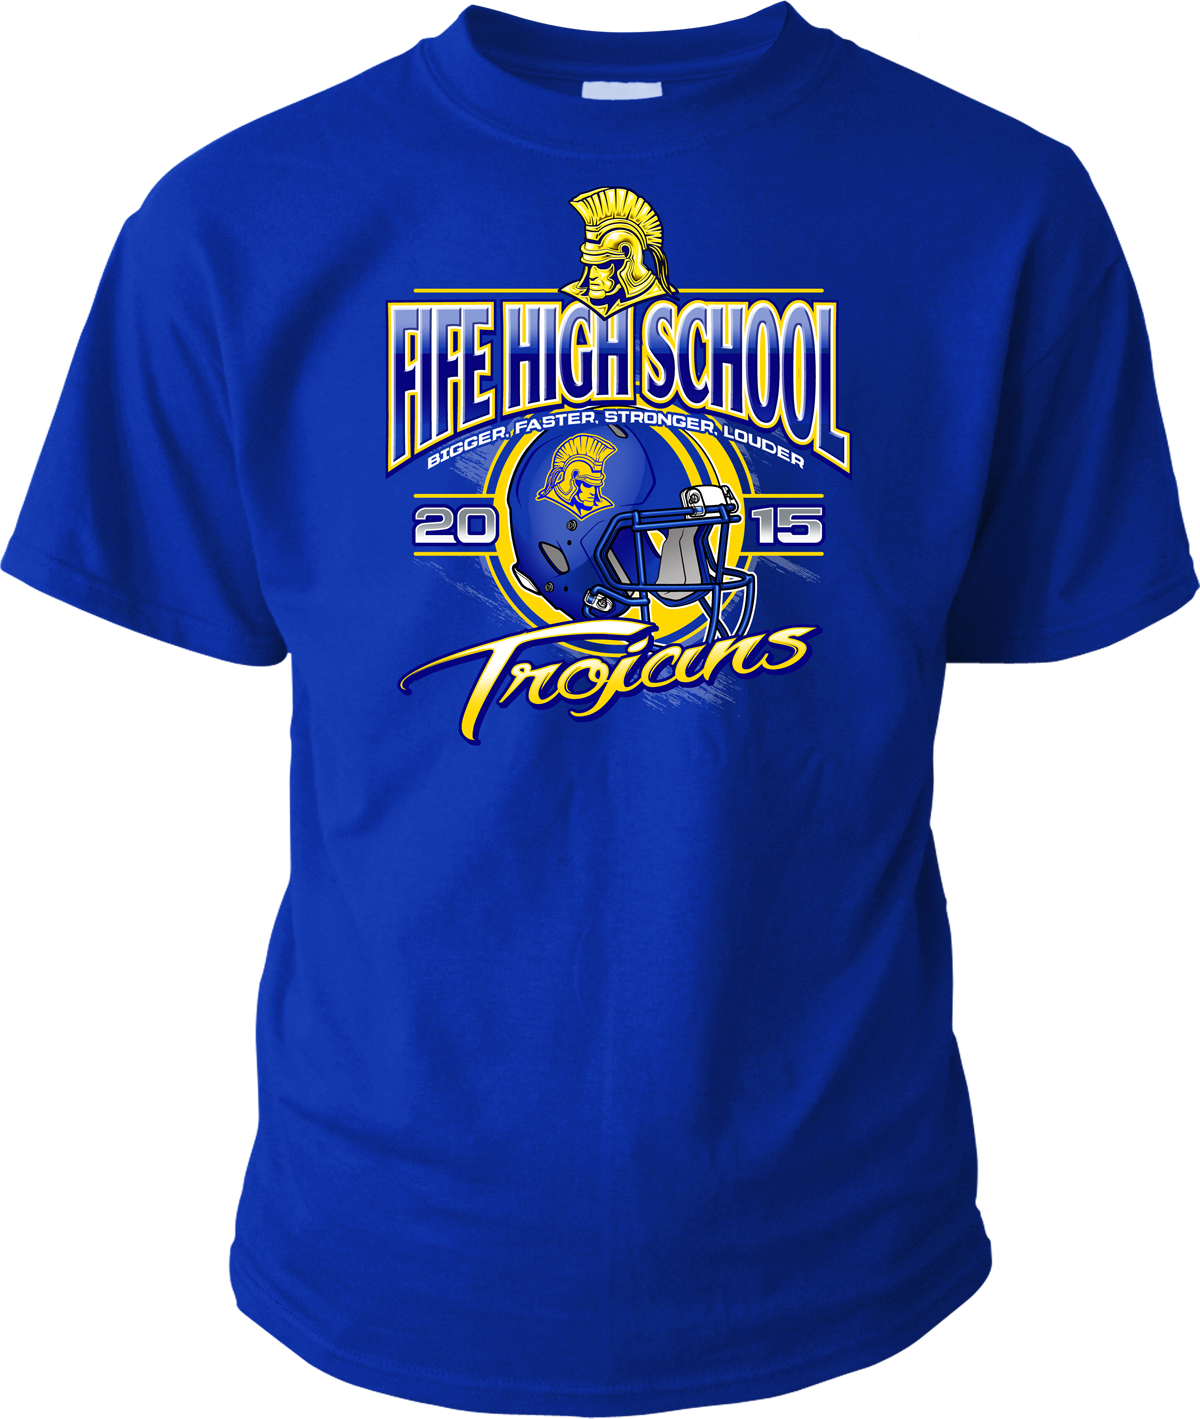 Fife High School Football T-shirt